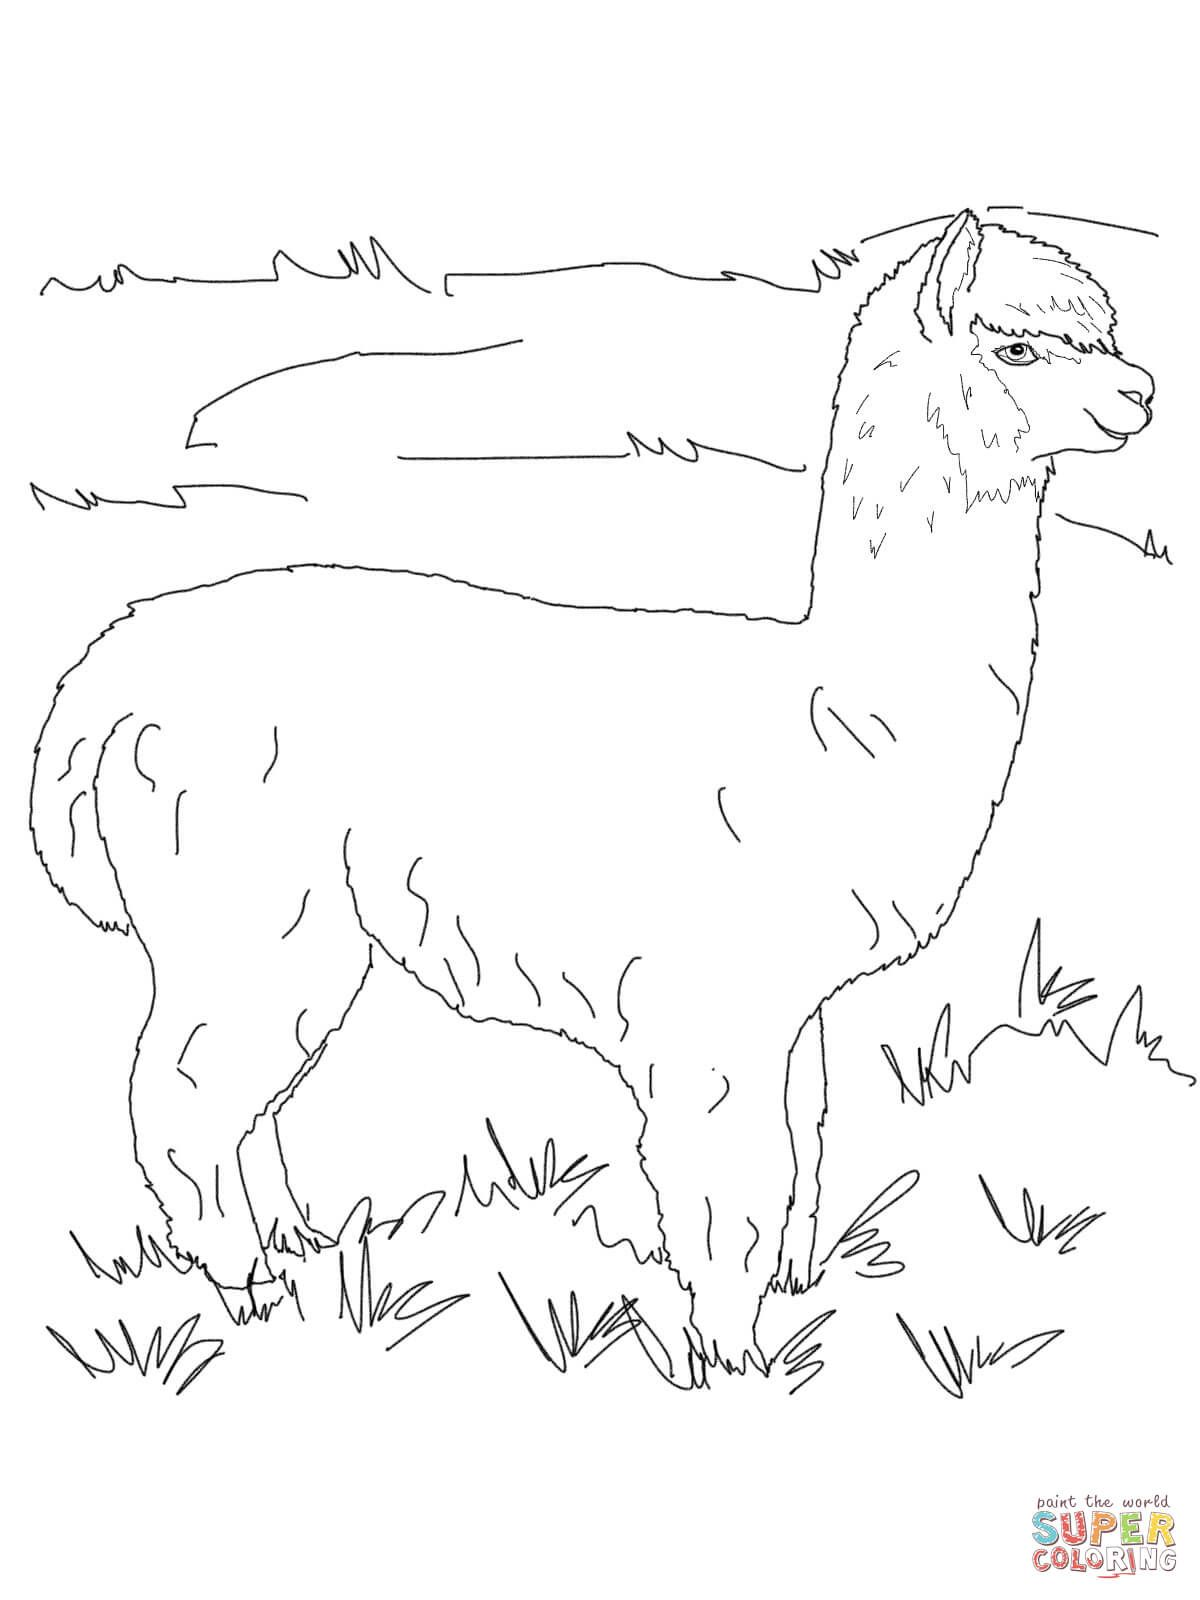 Alpaca coloring pages   Free Coloring Pages   Coloring ...